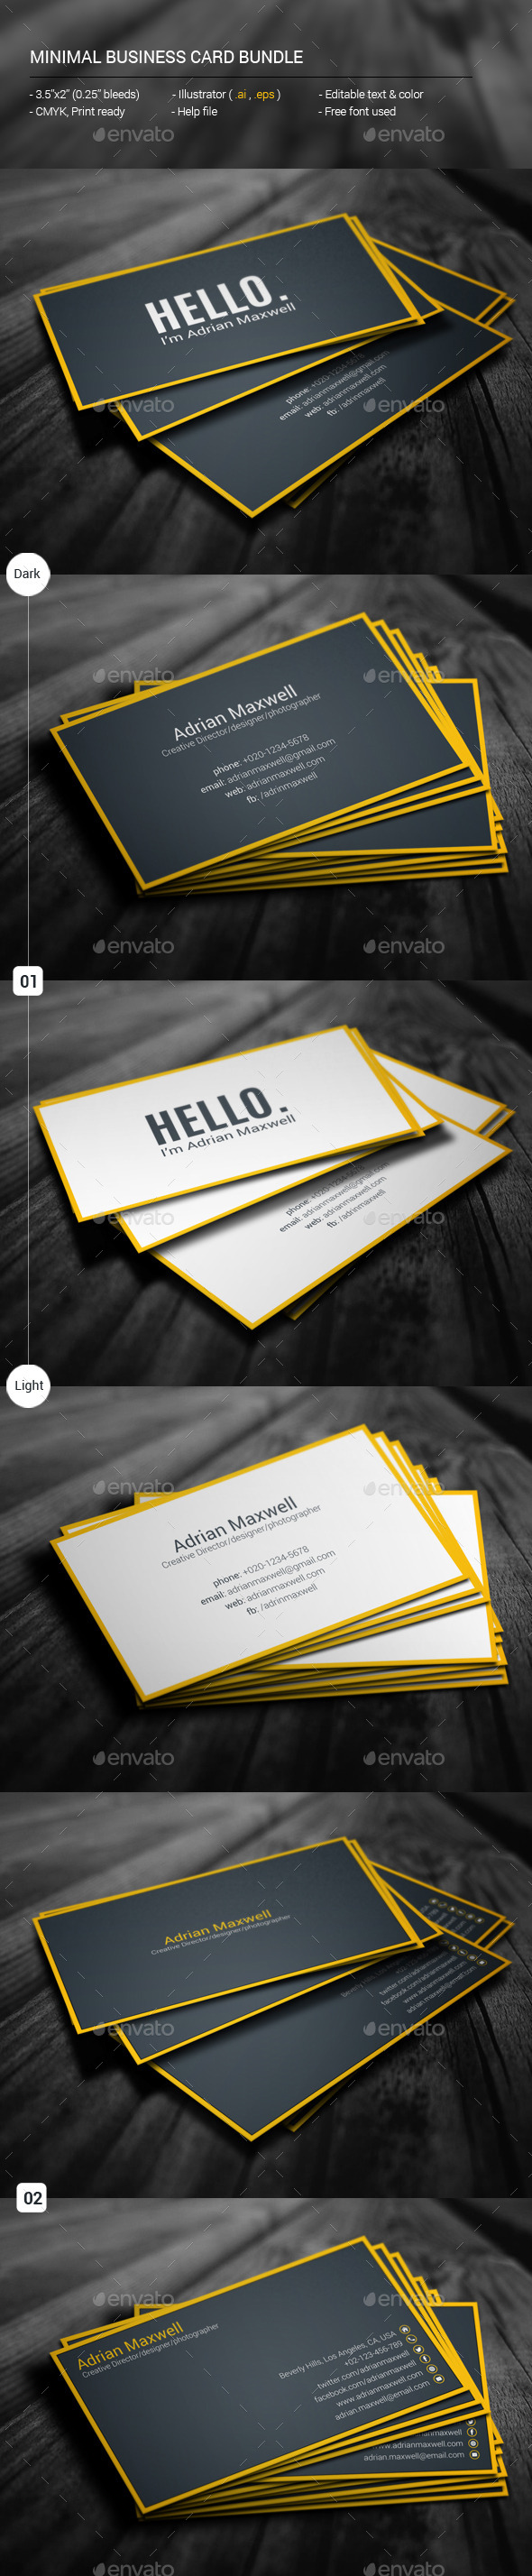 GraphicRiver Minimal Business Card Bundle 11587308